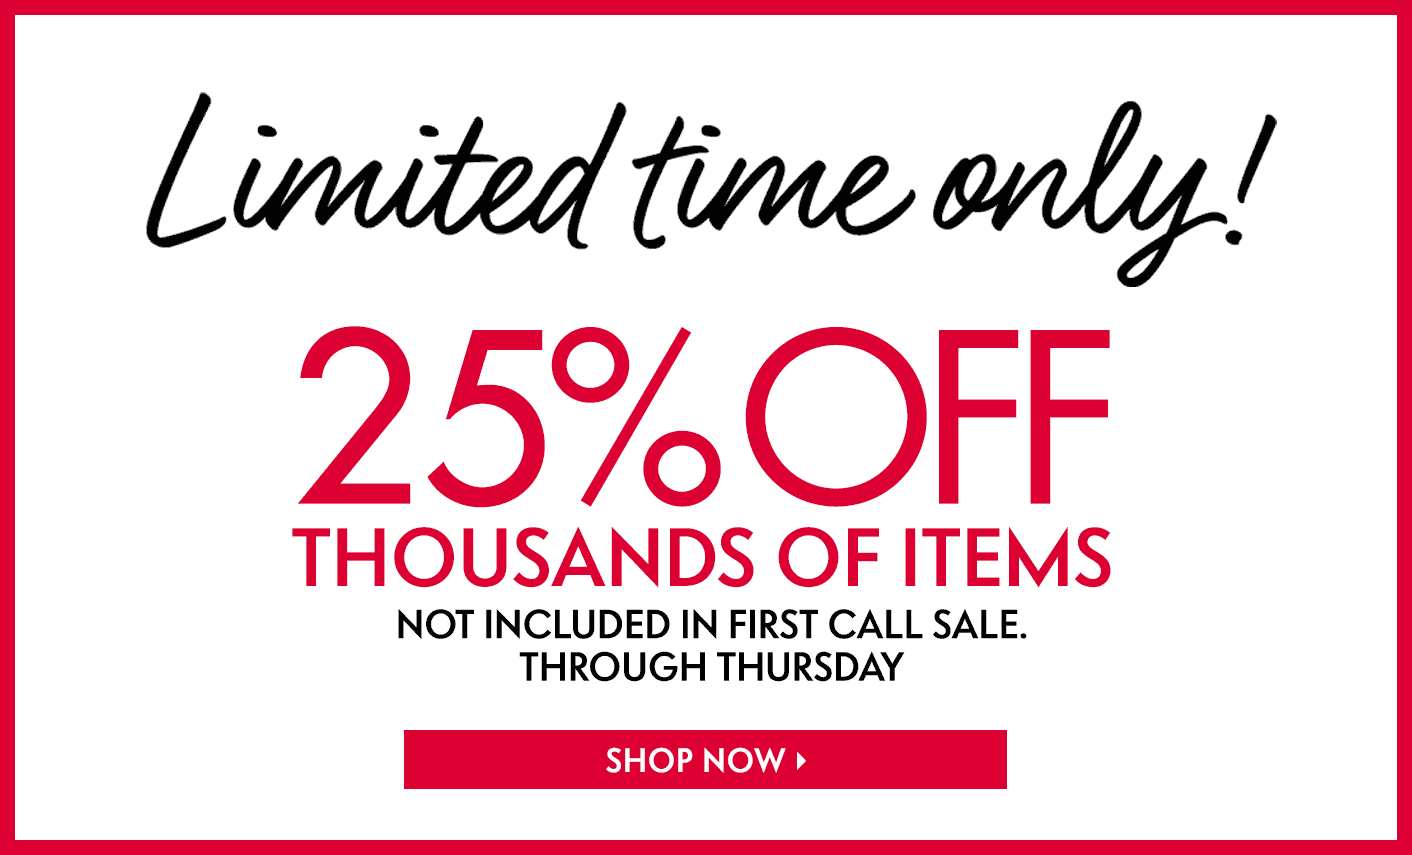 Limited time only! 25% Off thousands of items not included in First Call Sale. Through Thursday